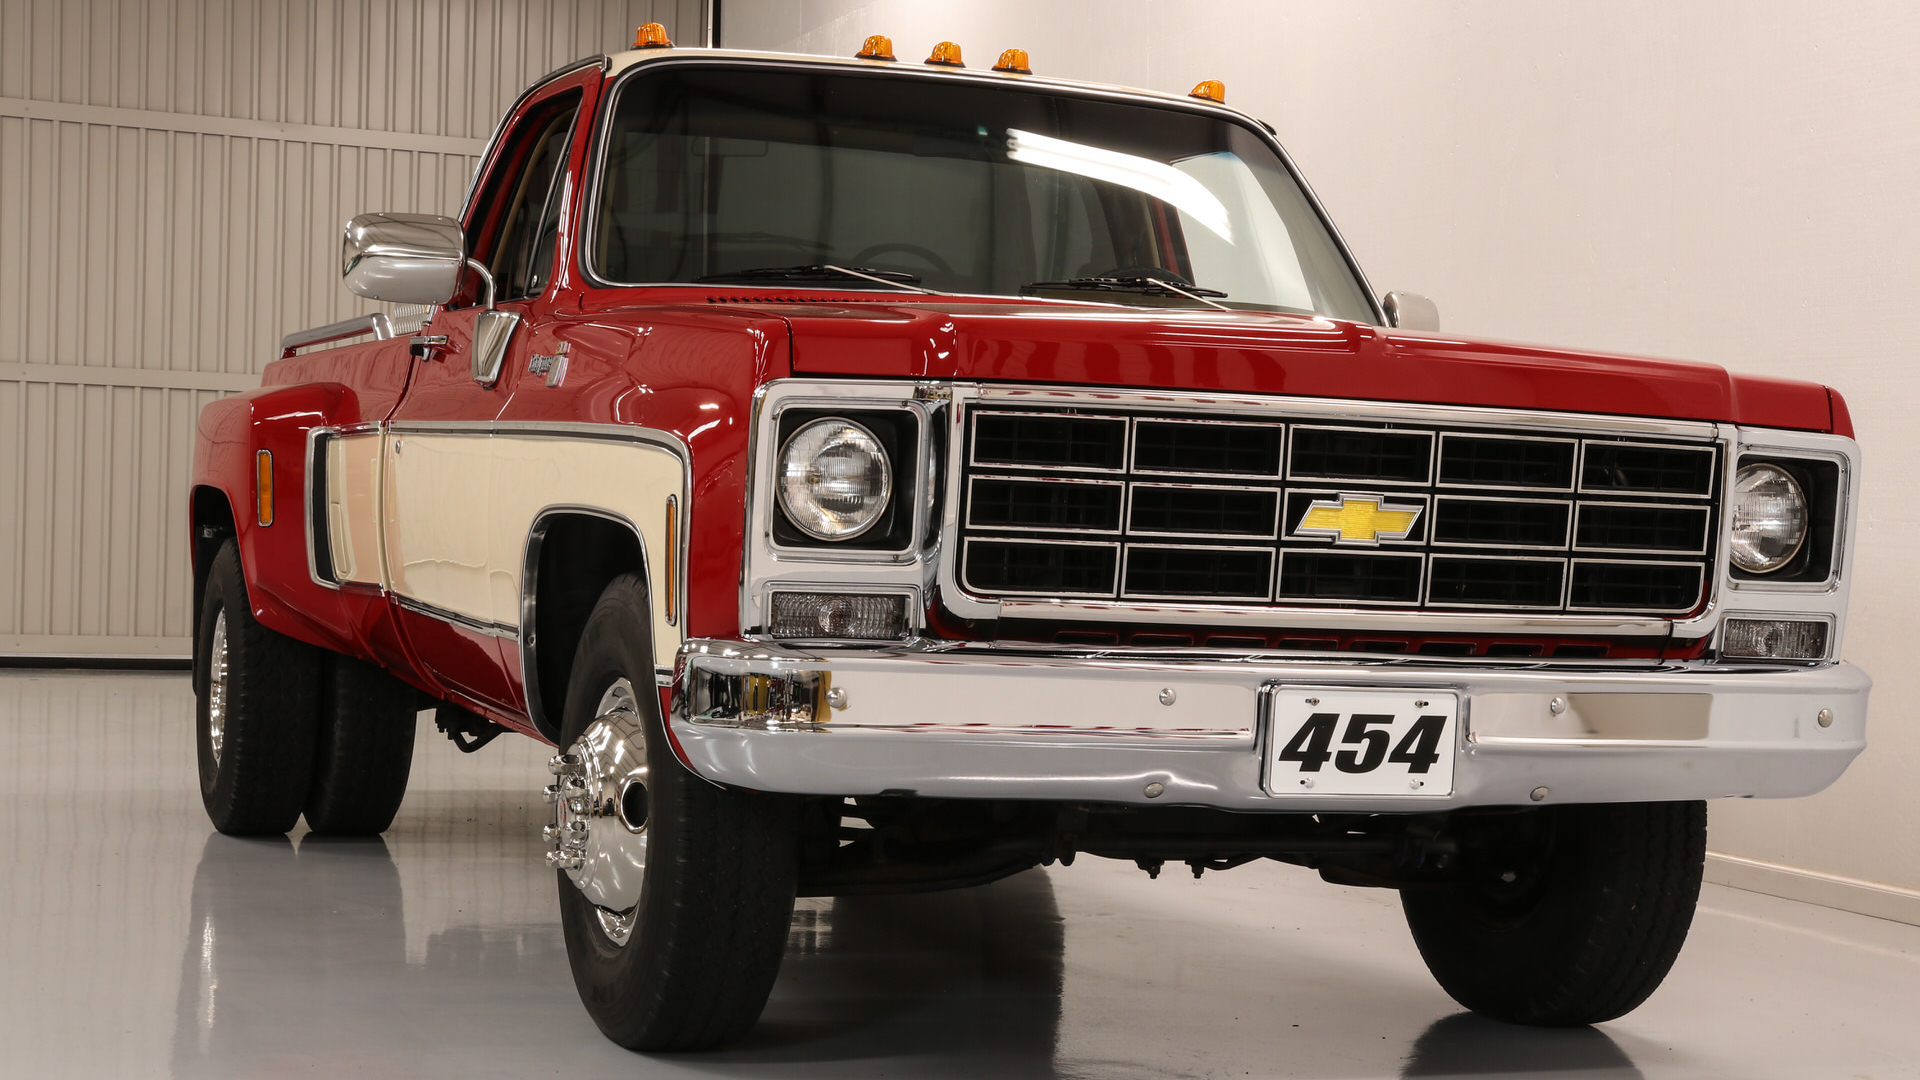 1979 Chevy truck square body Dually Cheyenne 454